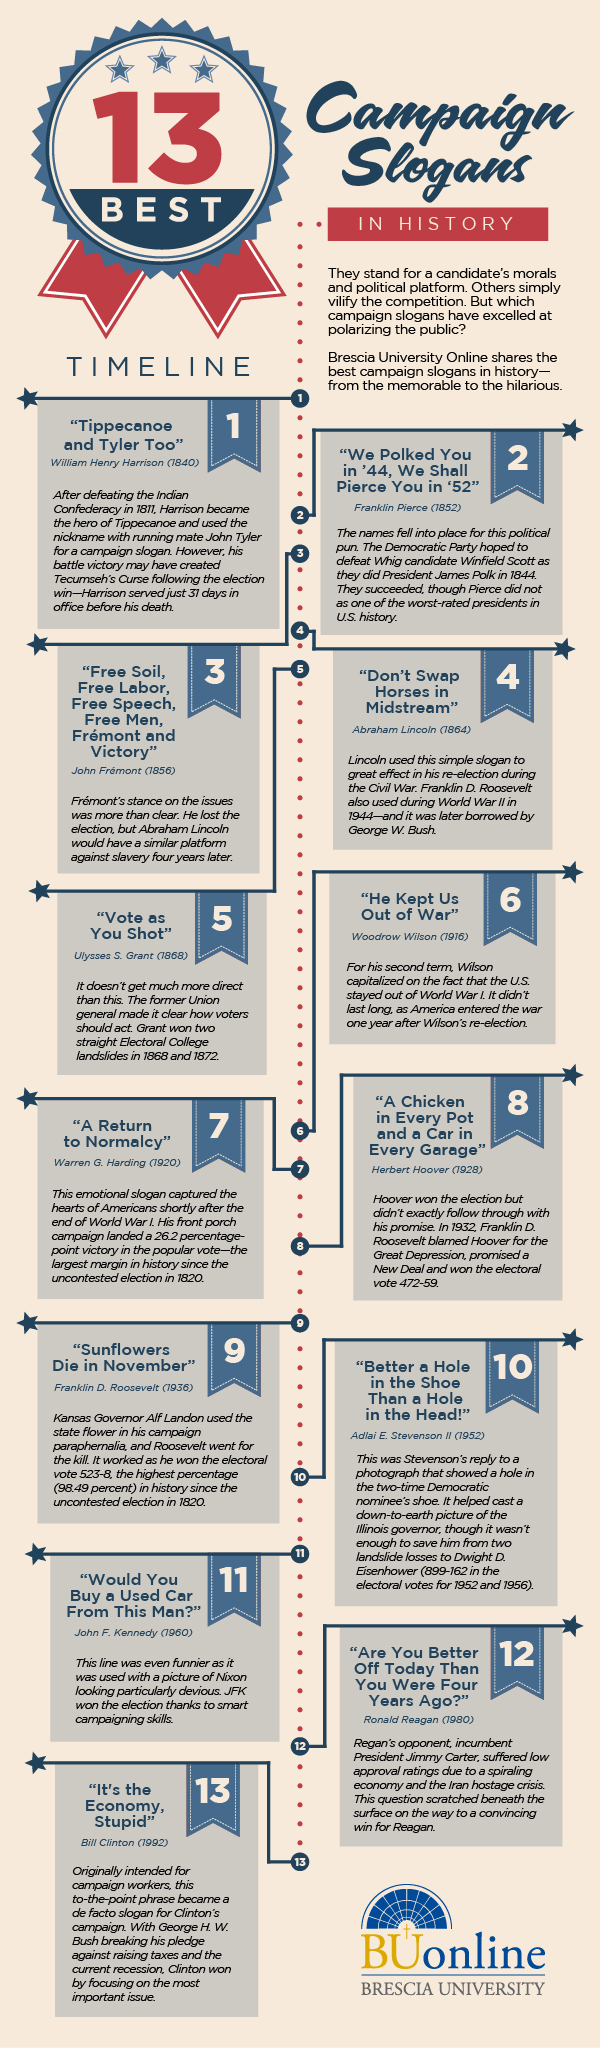 The 13 Best Campaign Slogans in History (Infographic)